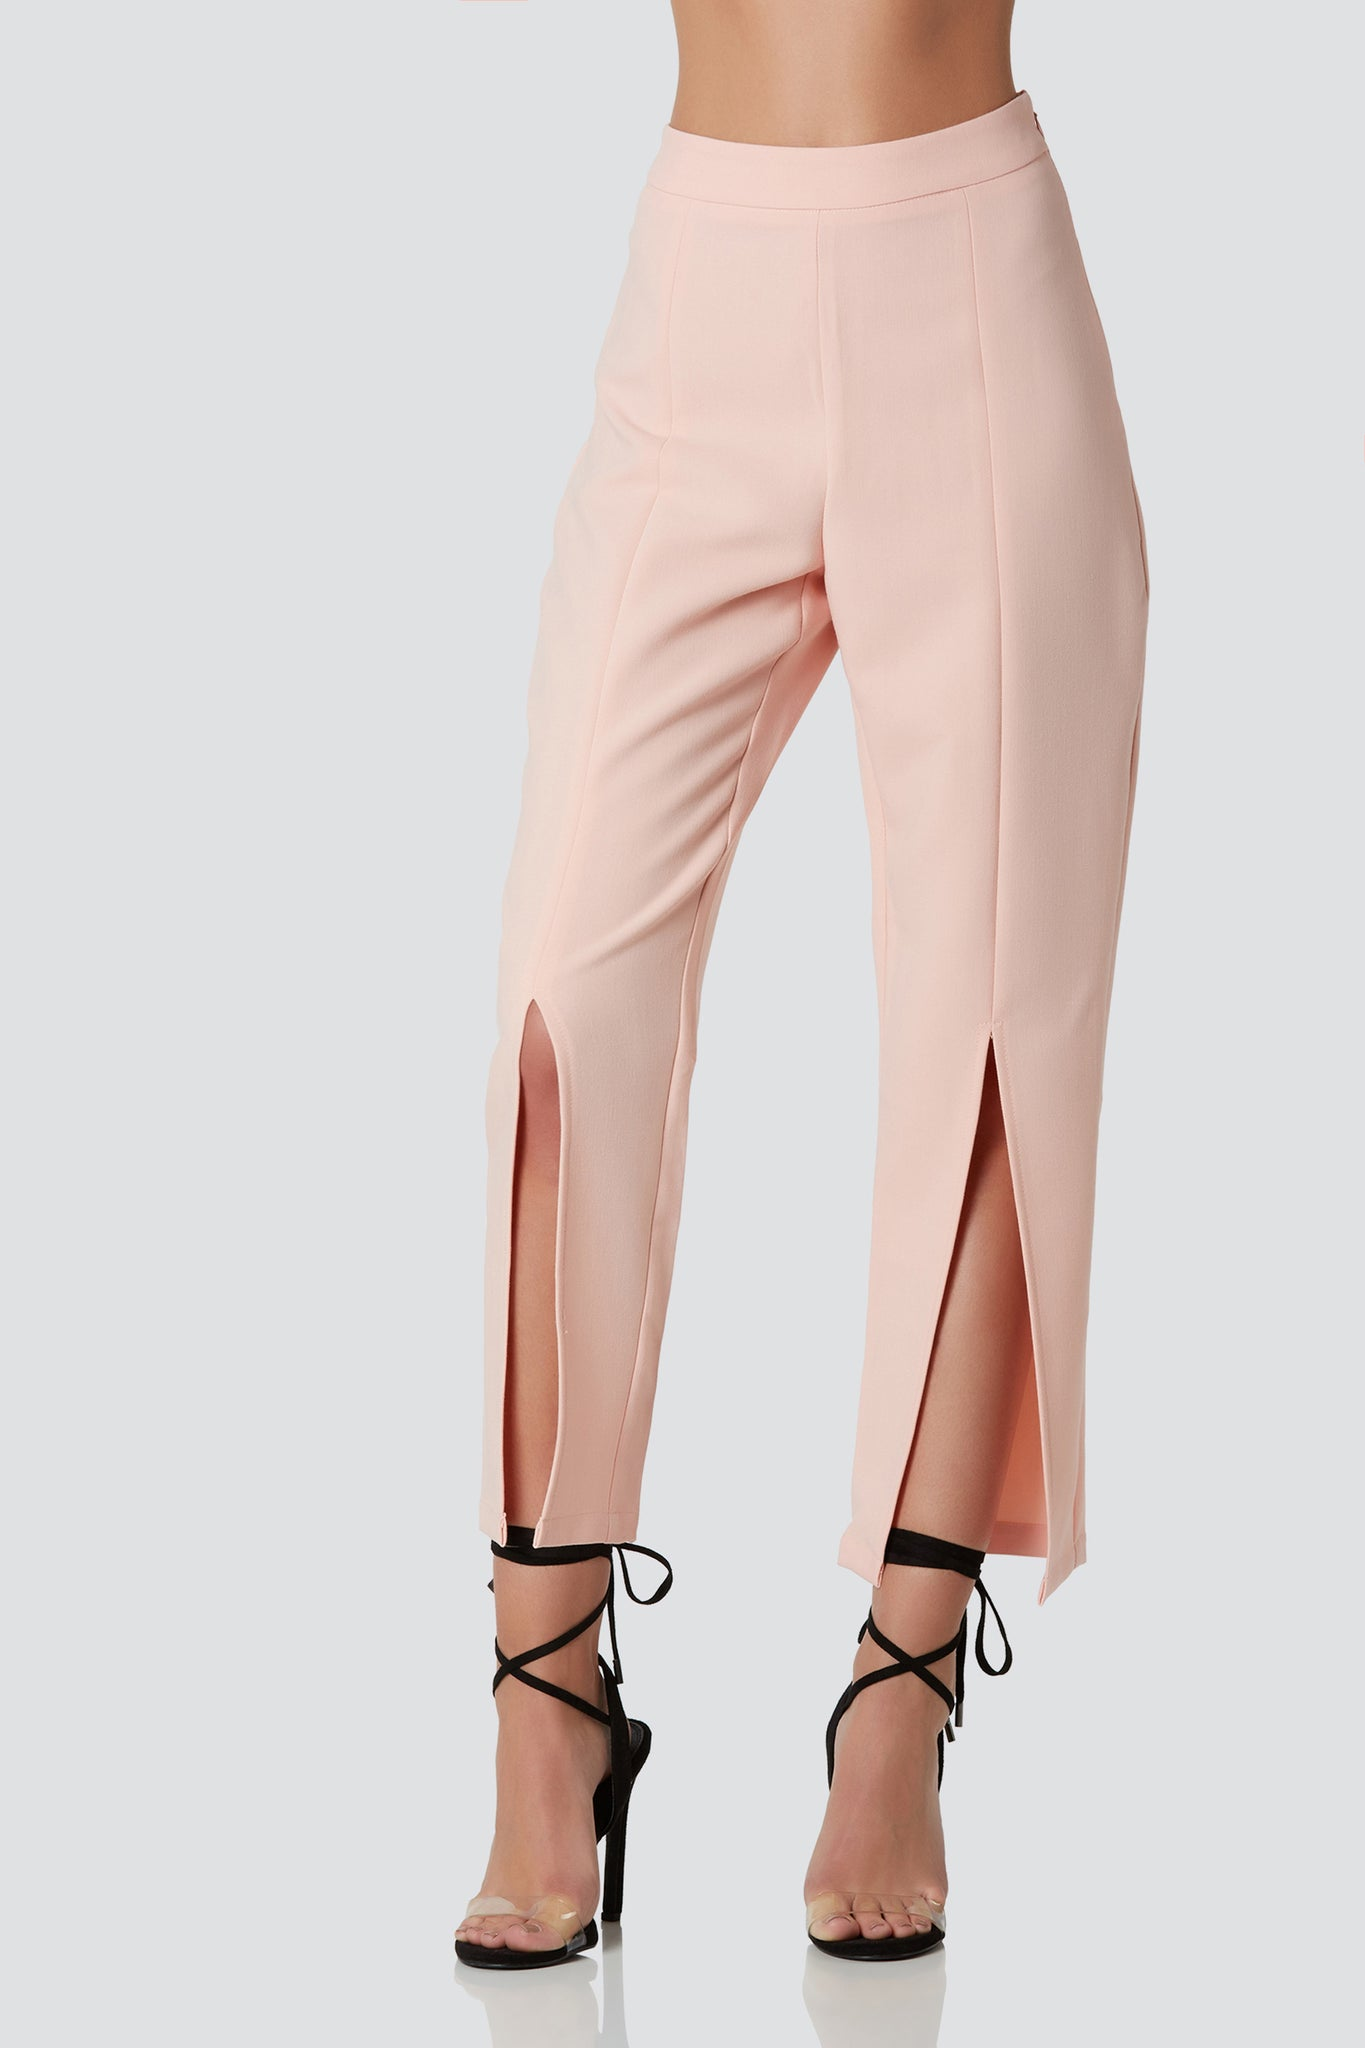 The Slit Crowd Pants